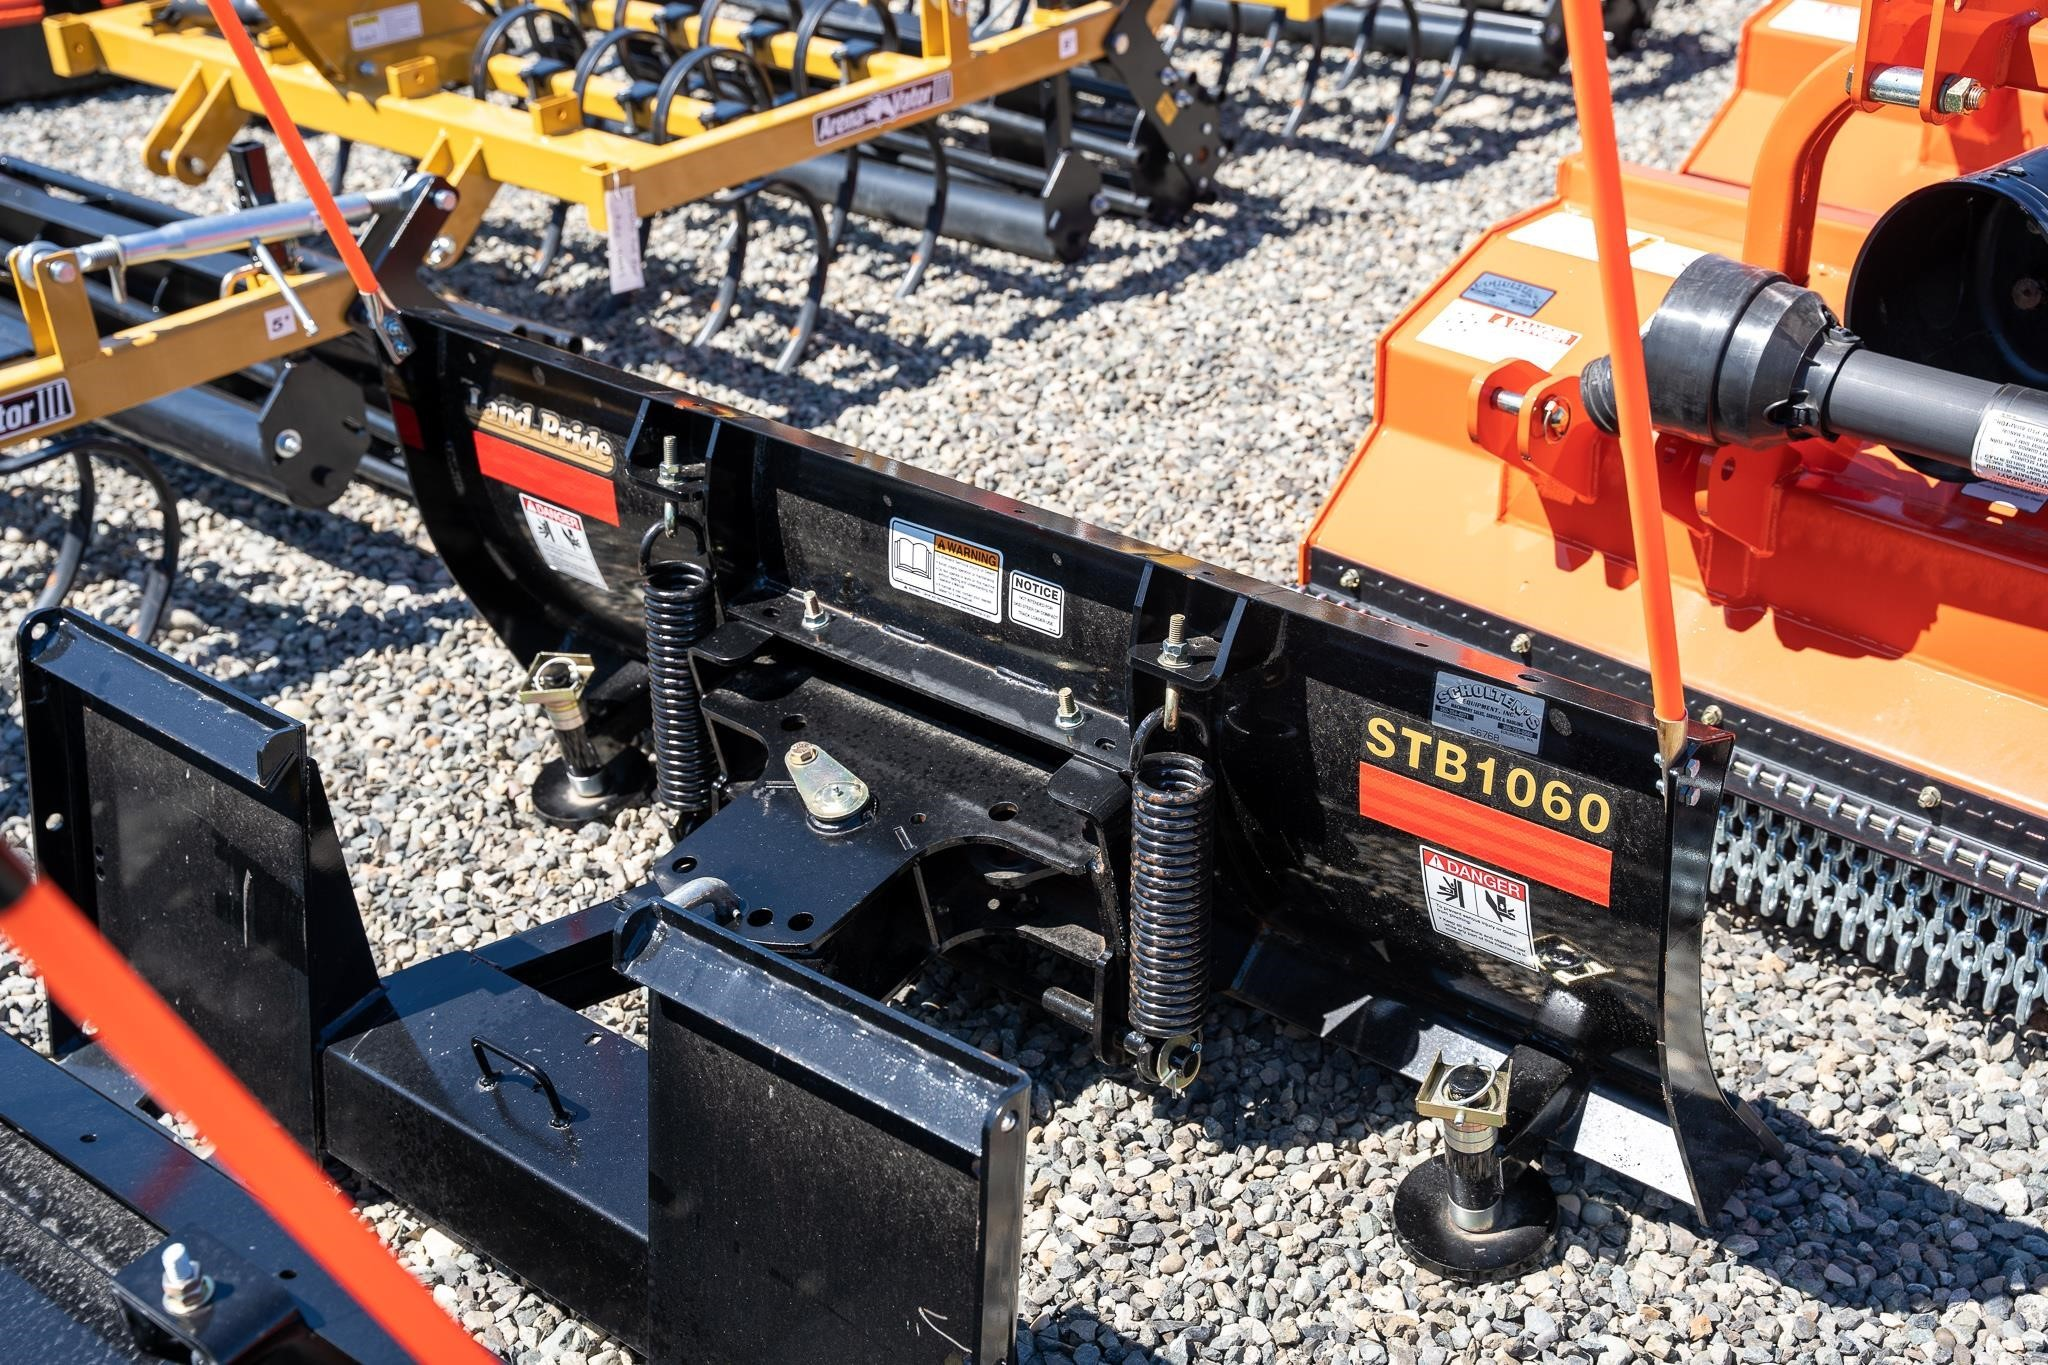 2021 Land Pride STB1060 Loader and Skid Steer Attachment